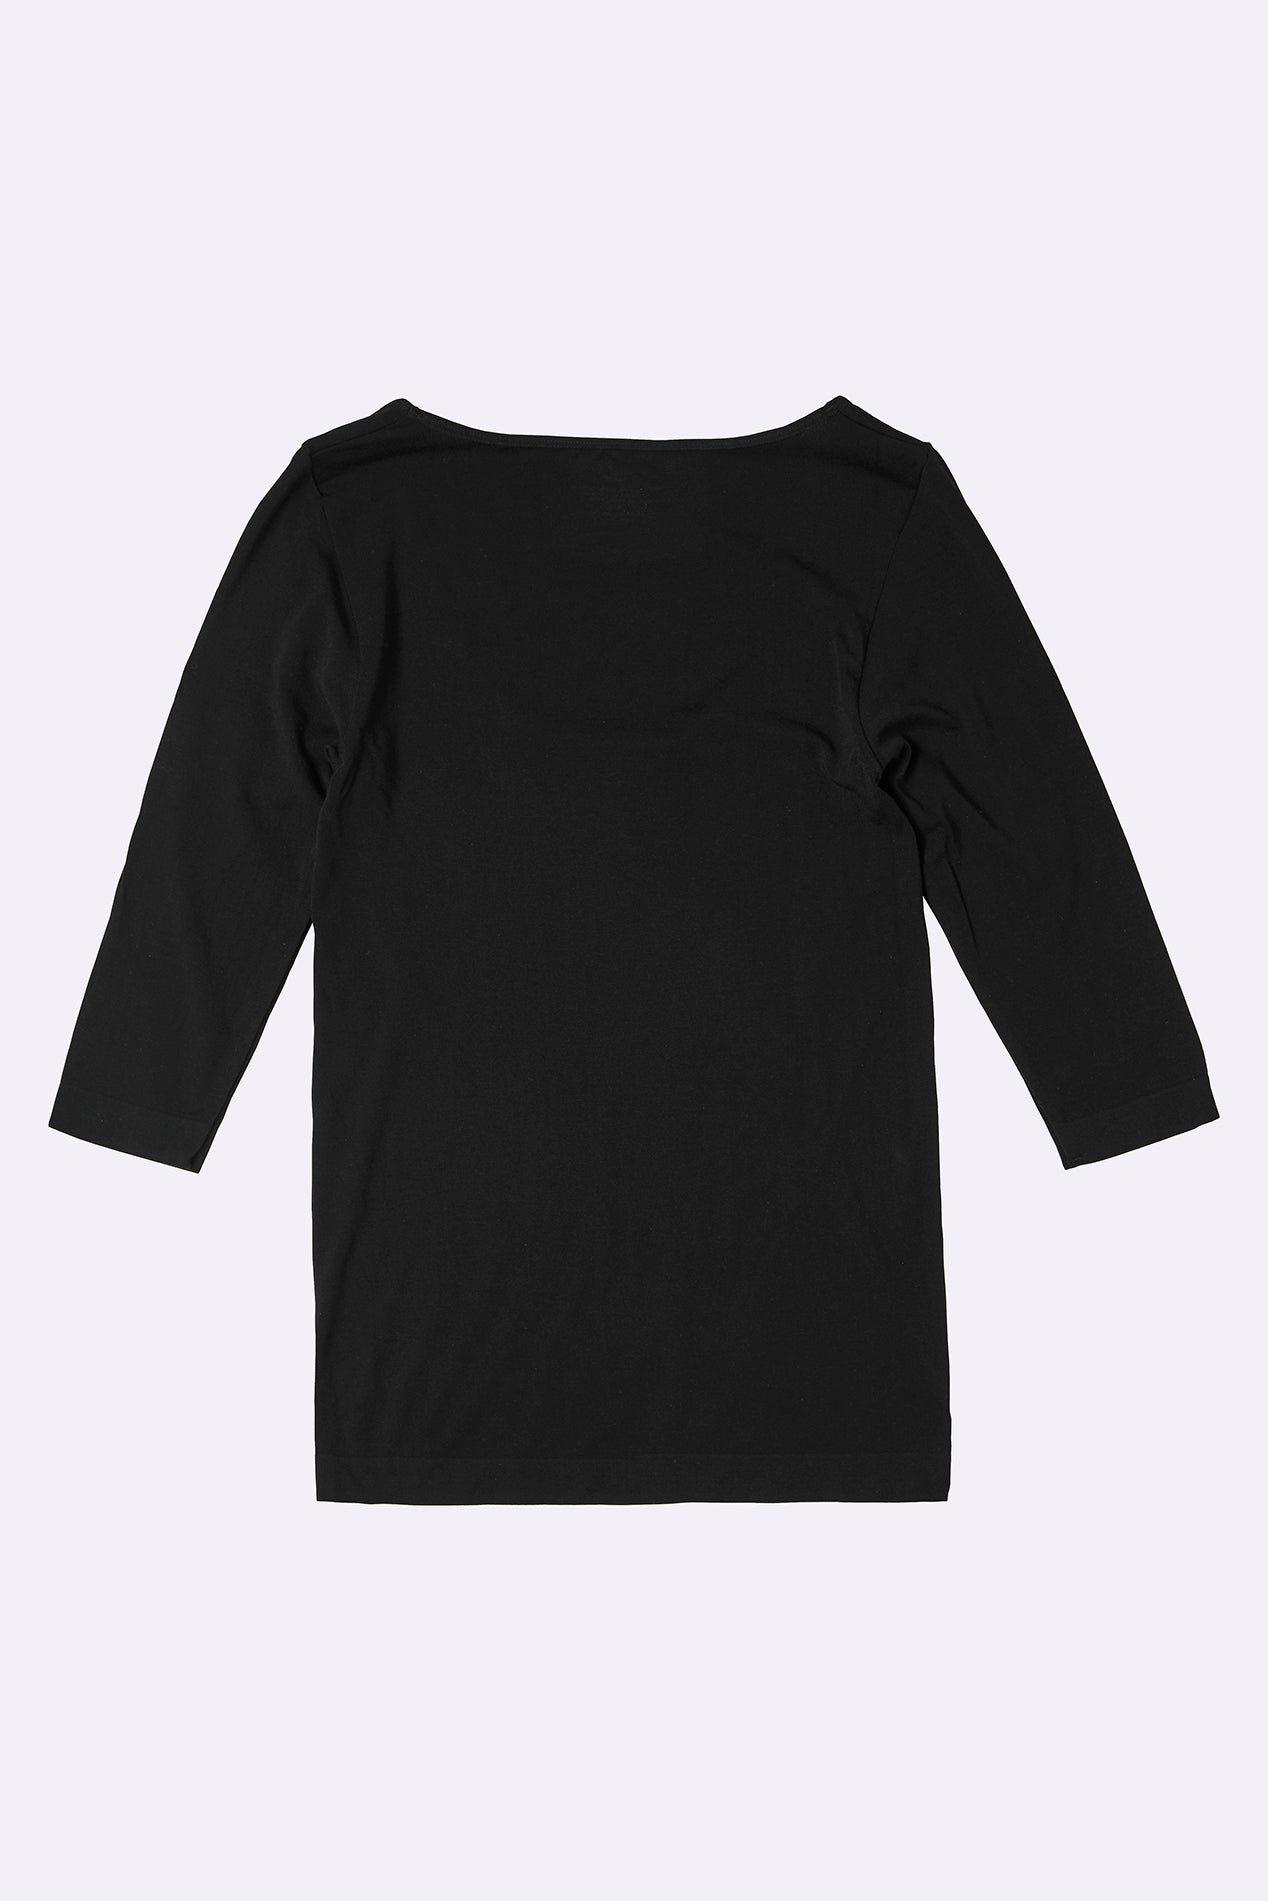 3/4 Sleeve Top Black